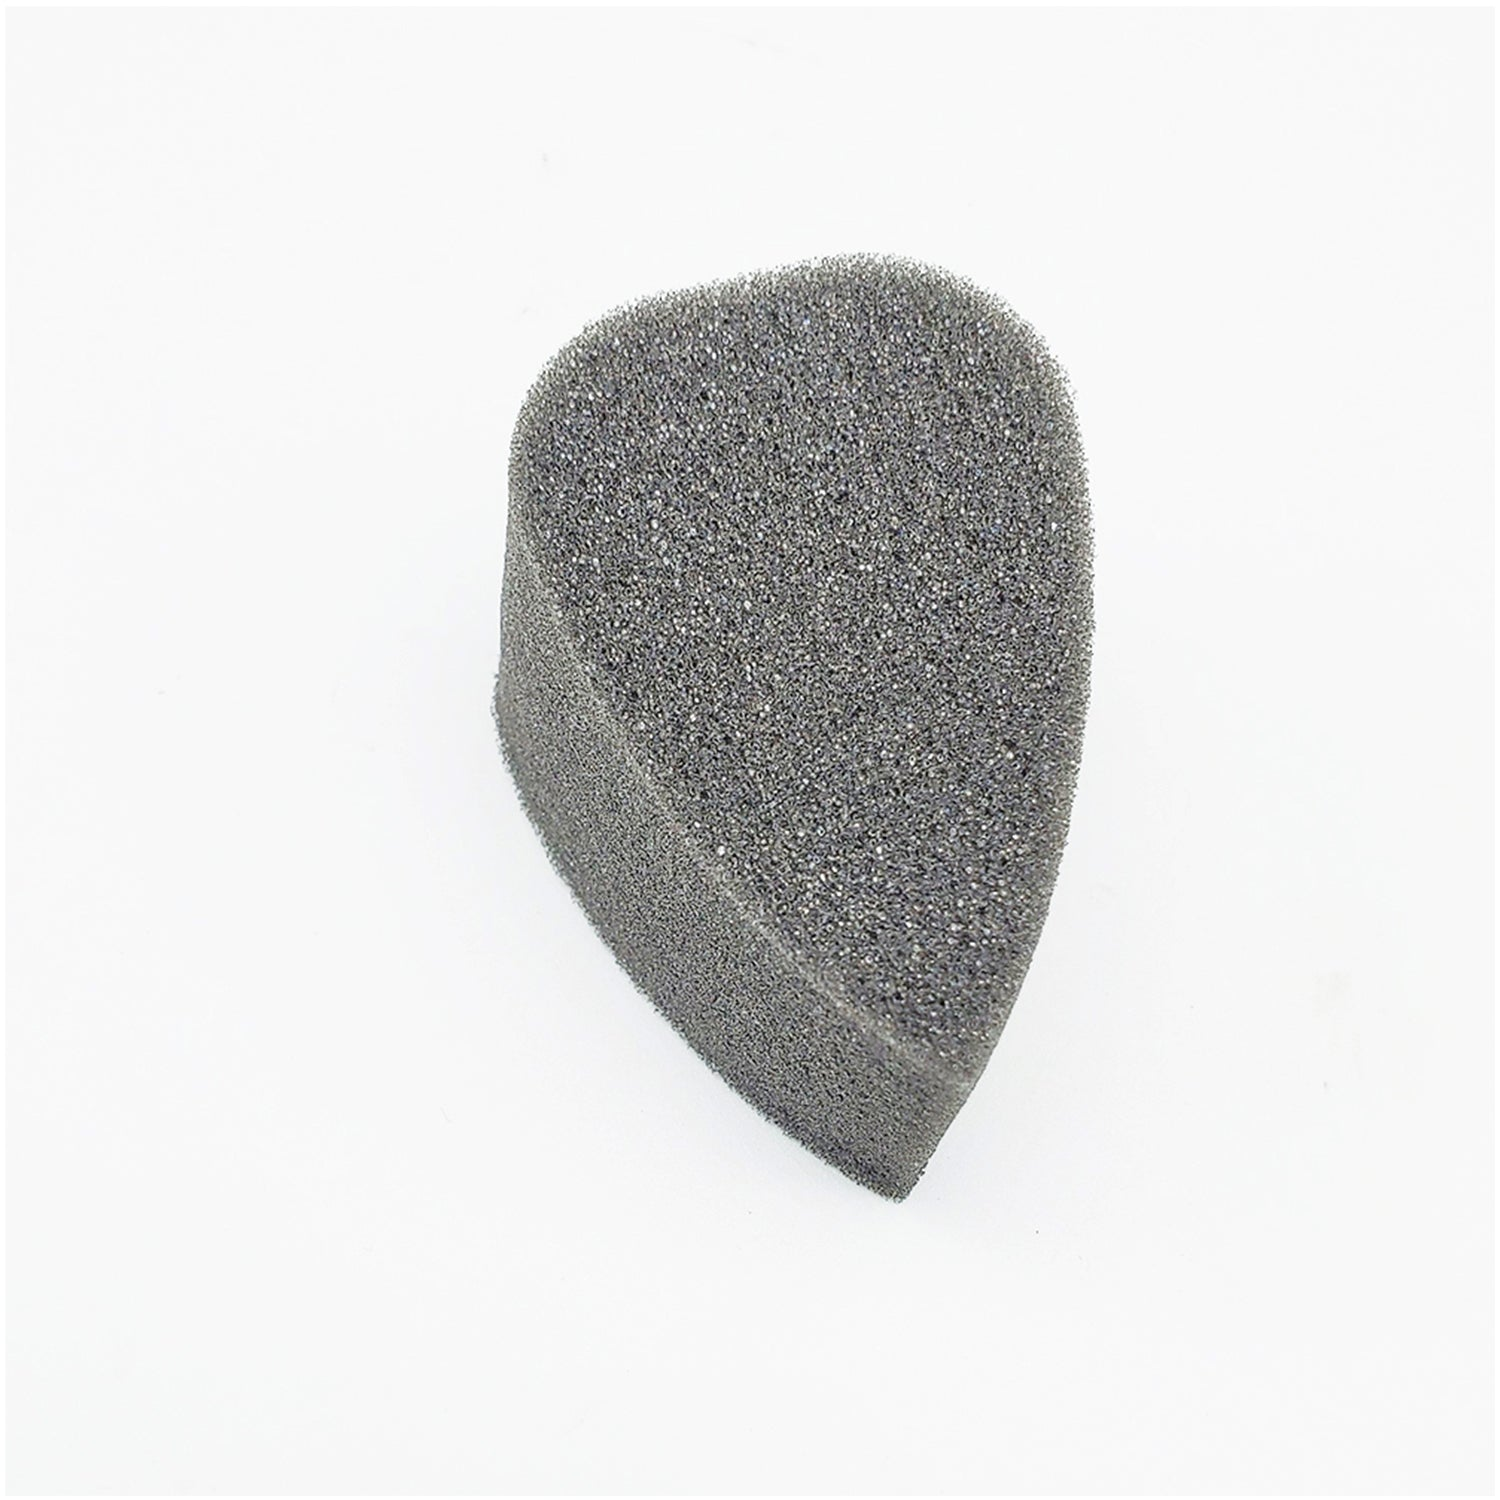 Kraze FX Petal Sponge (1, 2, 6 or 12 packs)